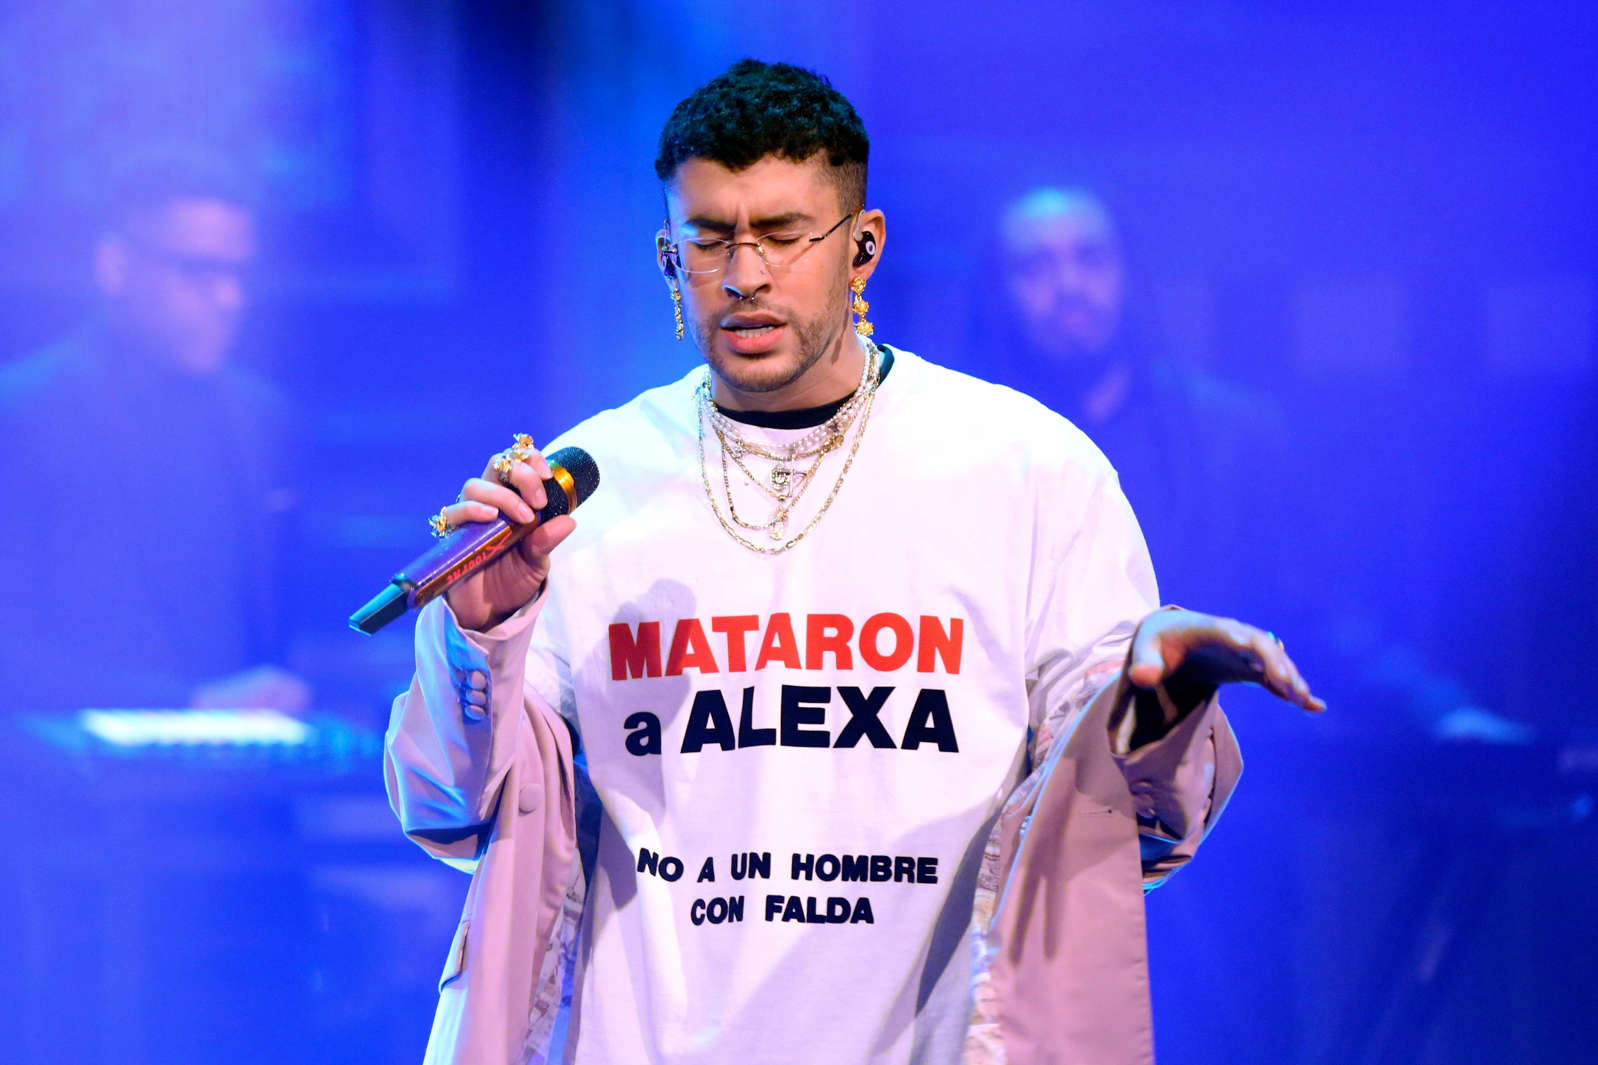 a baseball player holding a bat while standing on a stage: Rapper Bad Bunny performs on The Tonight Show Starring Jimmy Fallon on February 27, 2020. He wore a shirt bringing attention to the death of Alexa Negrón Luciano, a Puerto Rican trans woman who was killed while using a women's bathroom. Andrew Lipovsky/NBC/NBCU Photo Bank via Getty Images